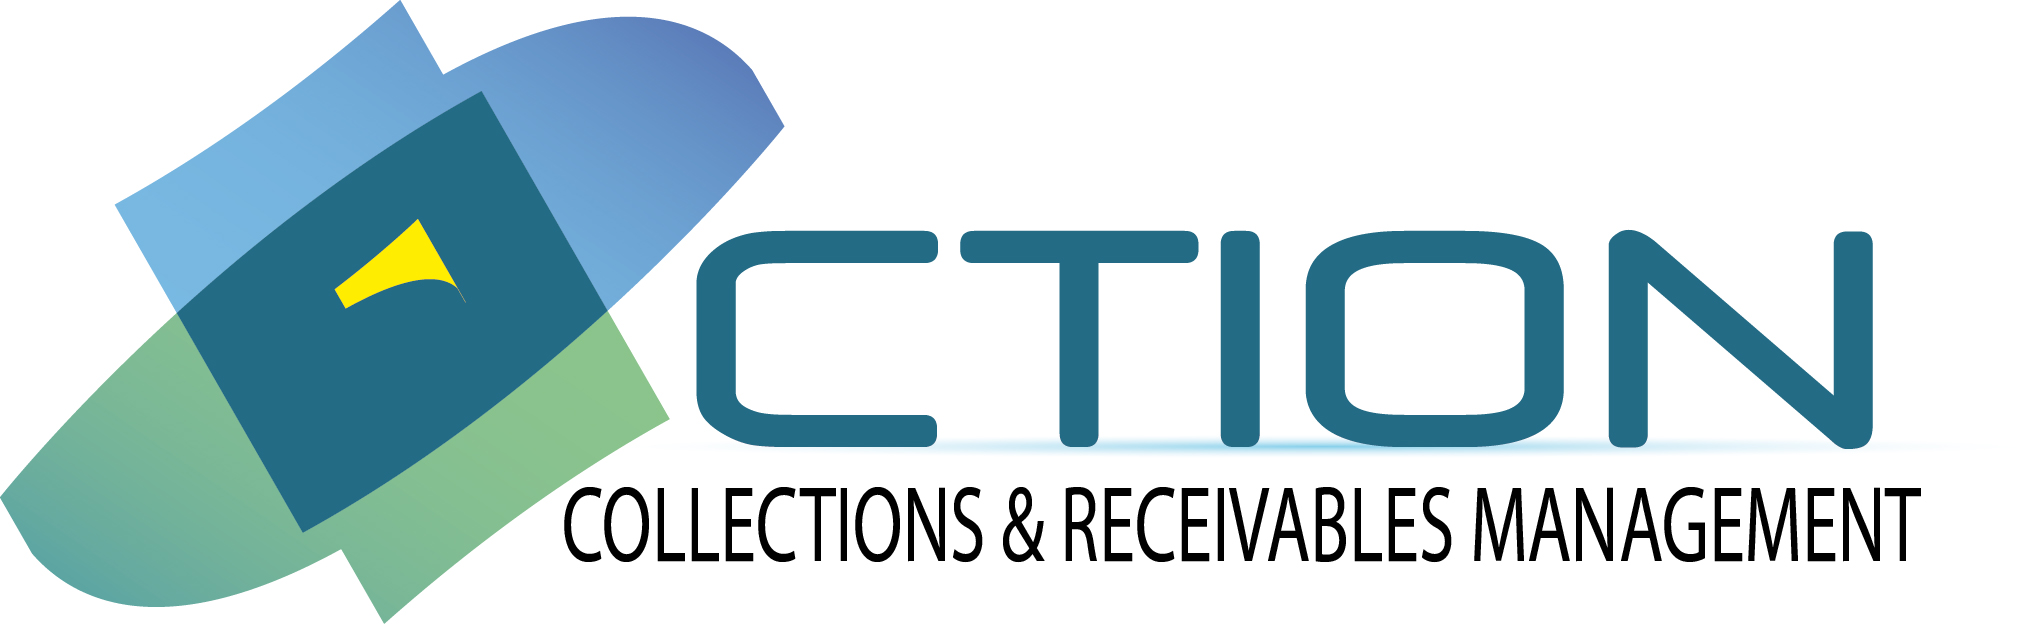 Action Collections and Receivables Management